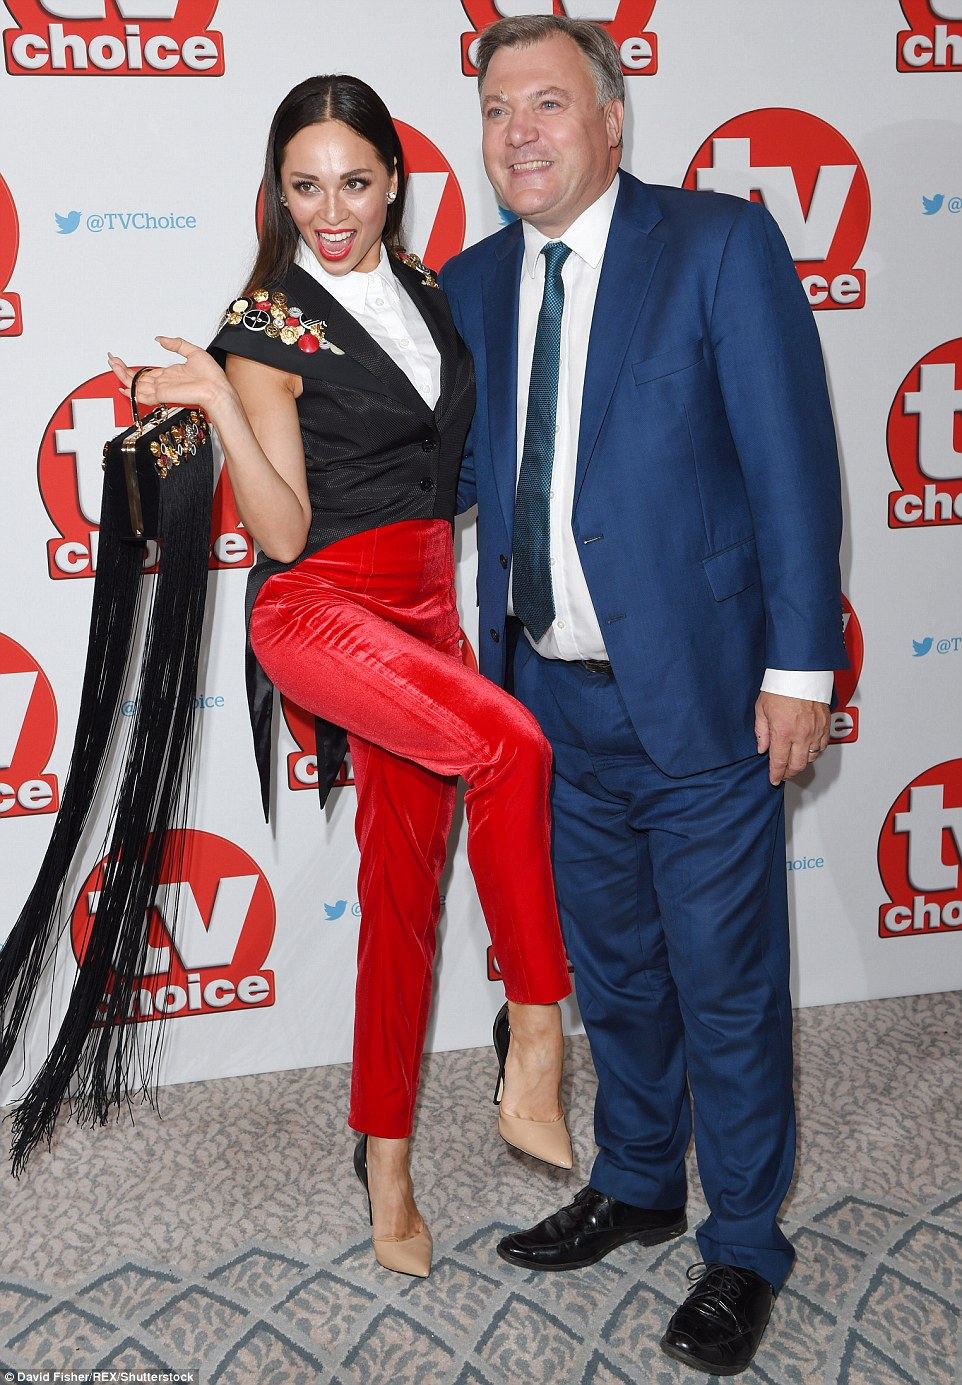 Glitter Balls:Strictly Come Dancing was represented at the awards by one of its most recent additions, former MP turned dancer Ed Balls and his professional partner Katya Jones